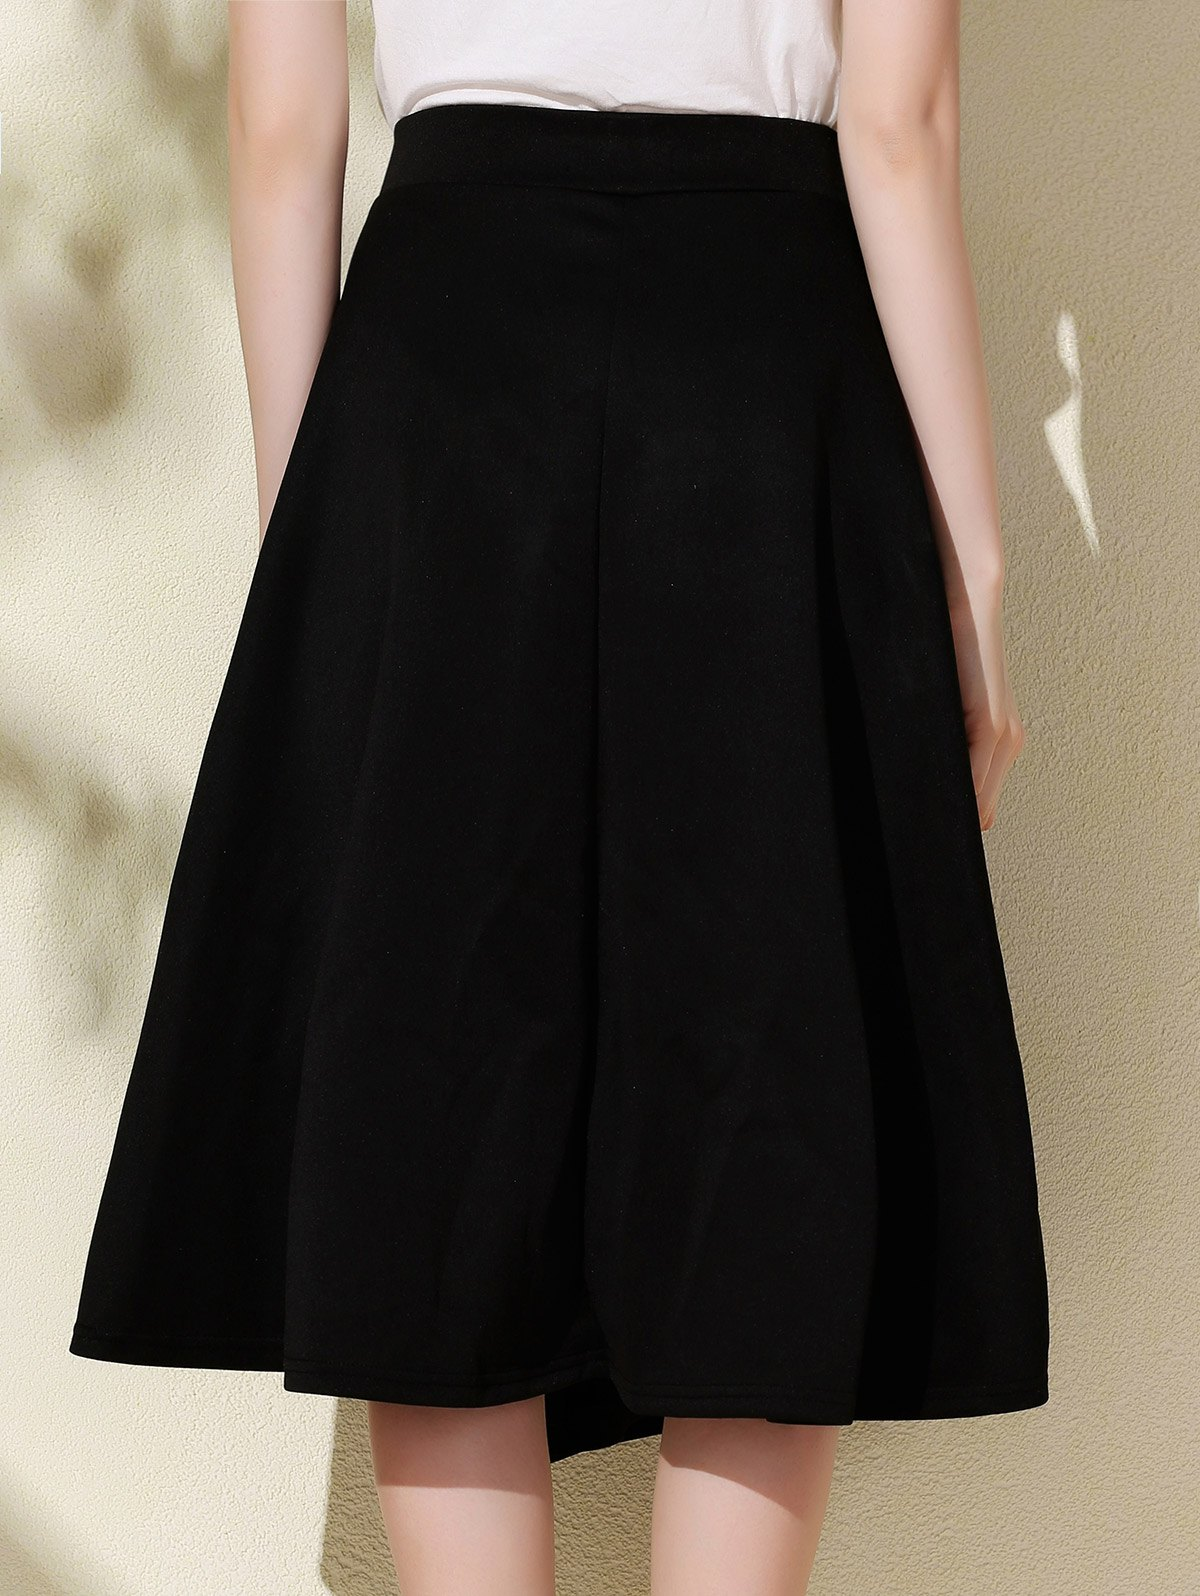 Stylish High-Waisted A-Line Solid Color Women's Midi Skirt - BLACK M